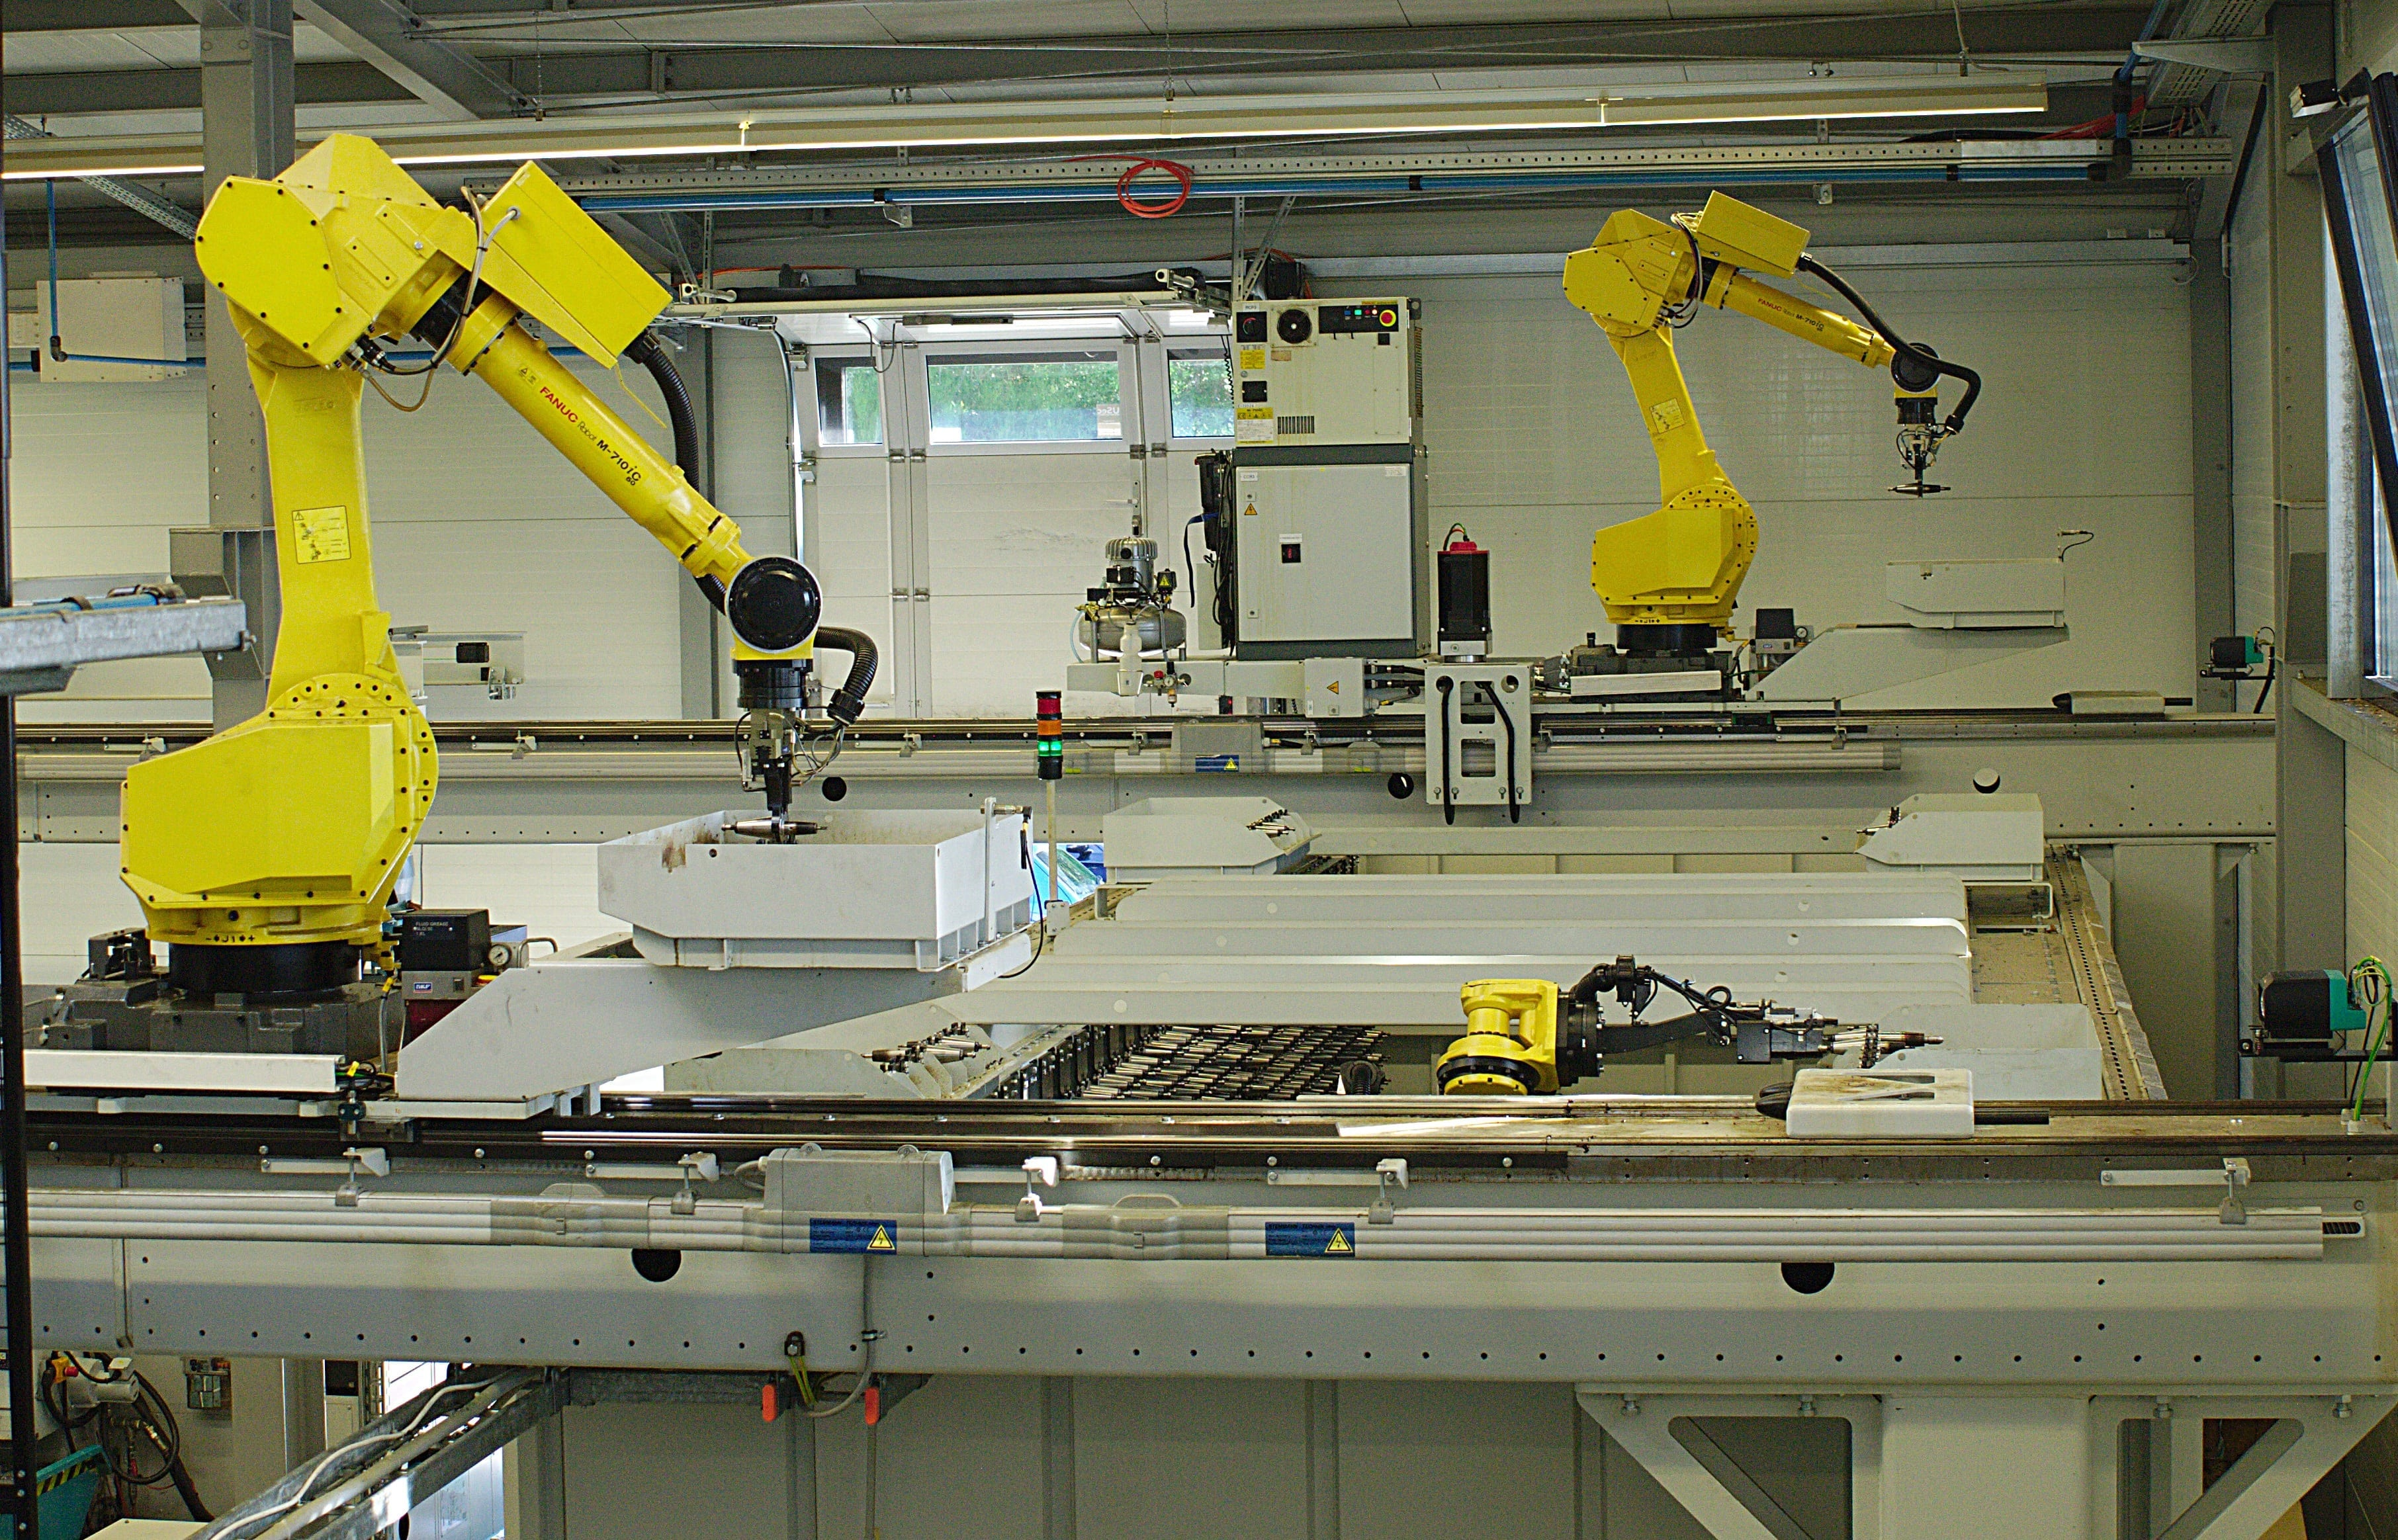 Automated tool management for increased machine utilization and productivity